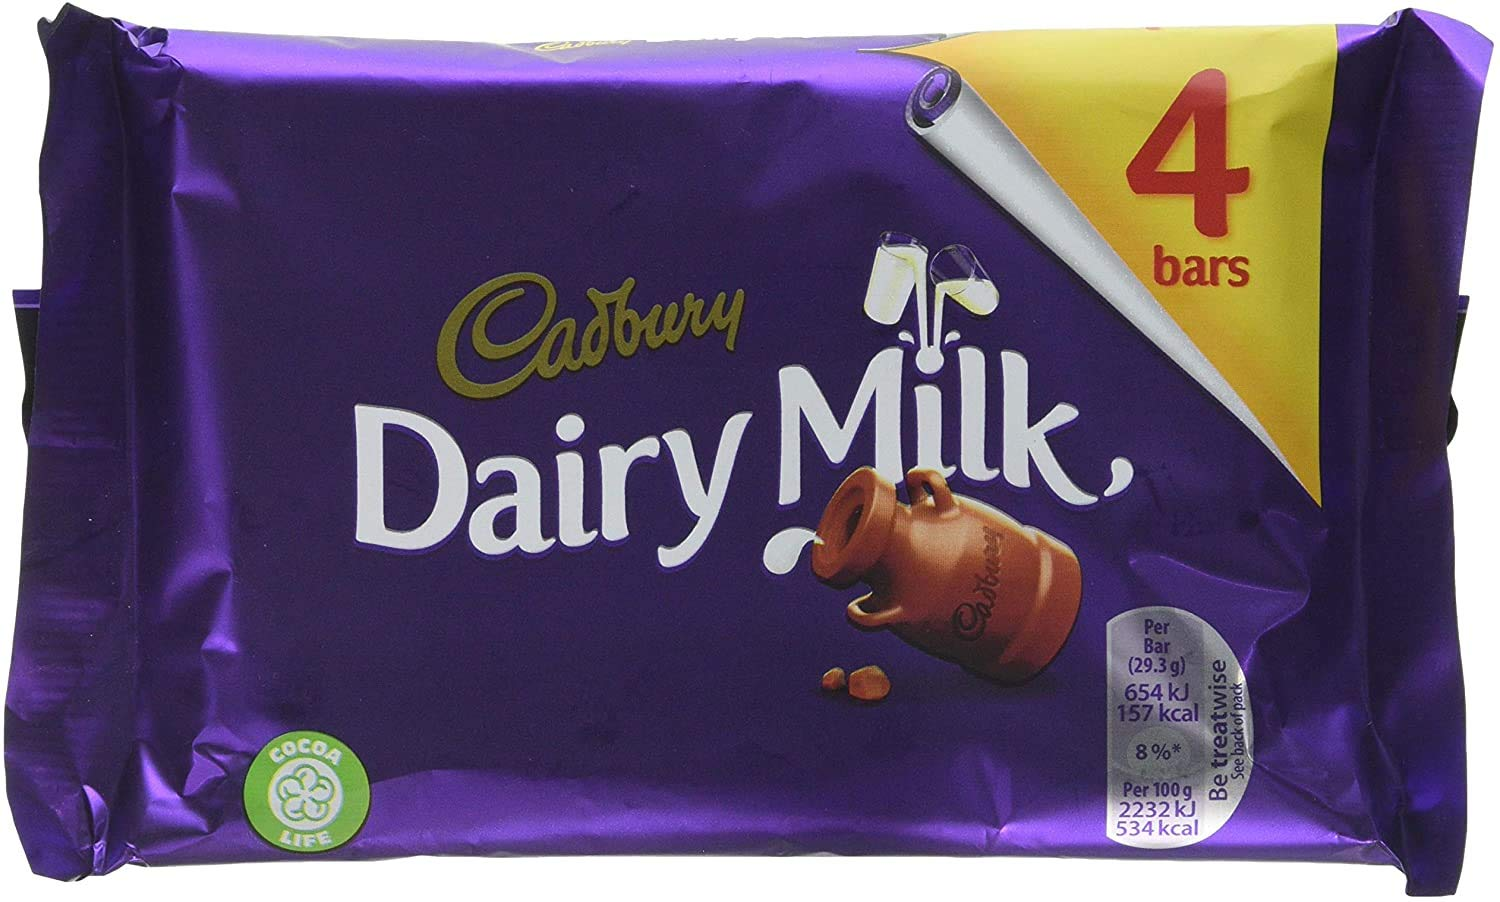 Cadbury Dairy Milk Chocolate Candy Bar Pack Imported From The UK England Creamy Milk Chocolate Made With A Glass & A Half Of Fresh Milk Made With Fair trade Cocoa The Best British Candy Bar